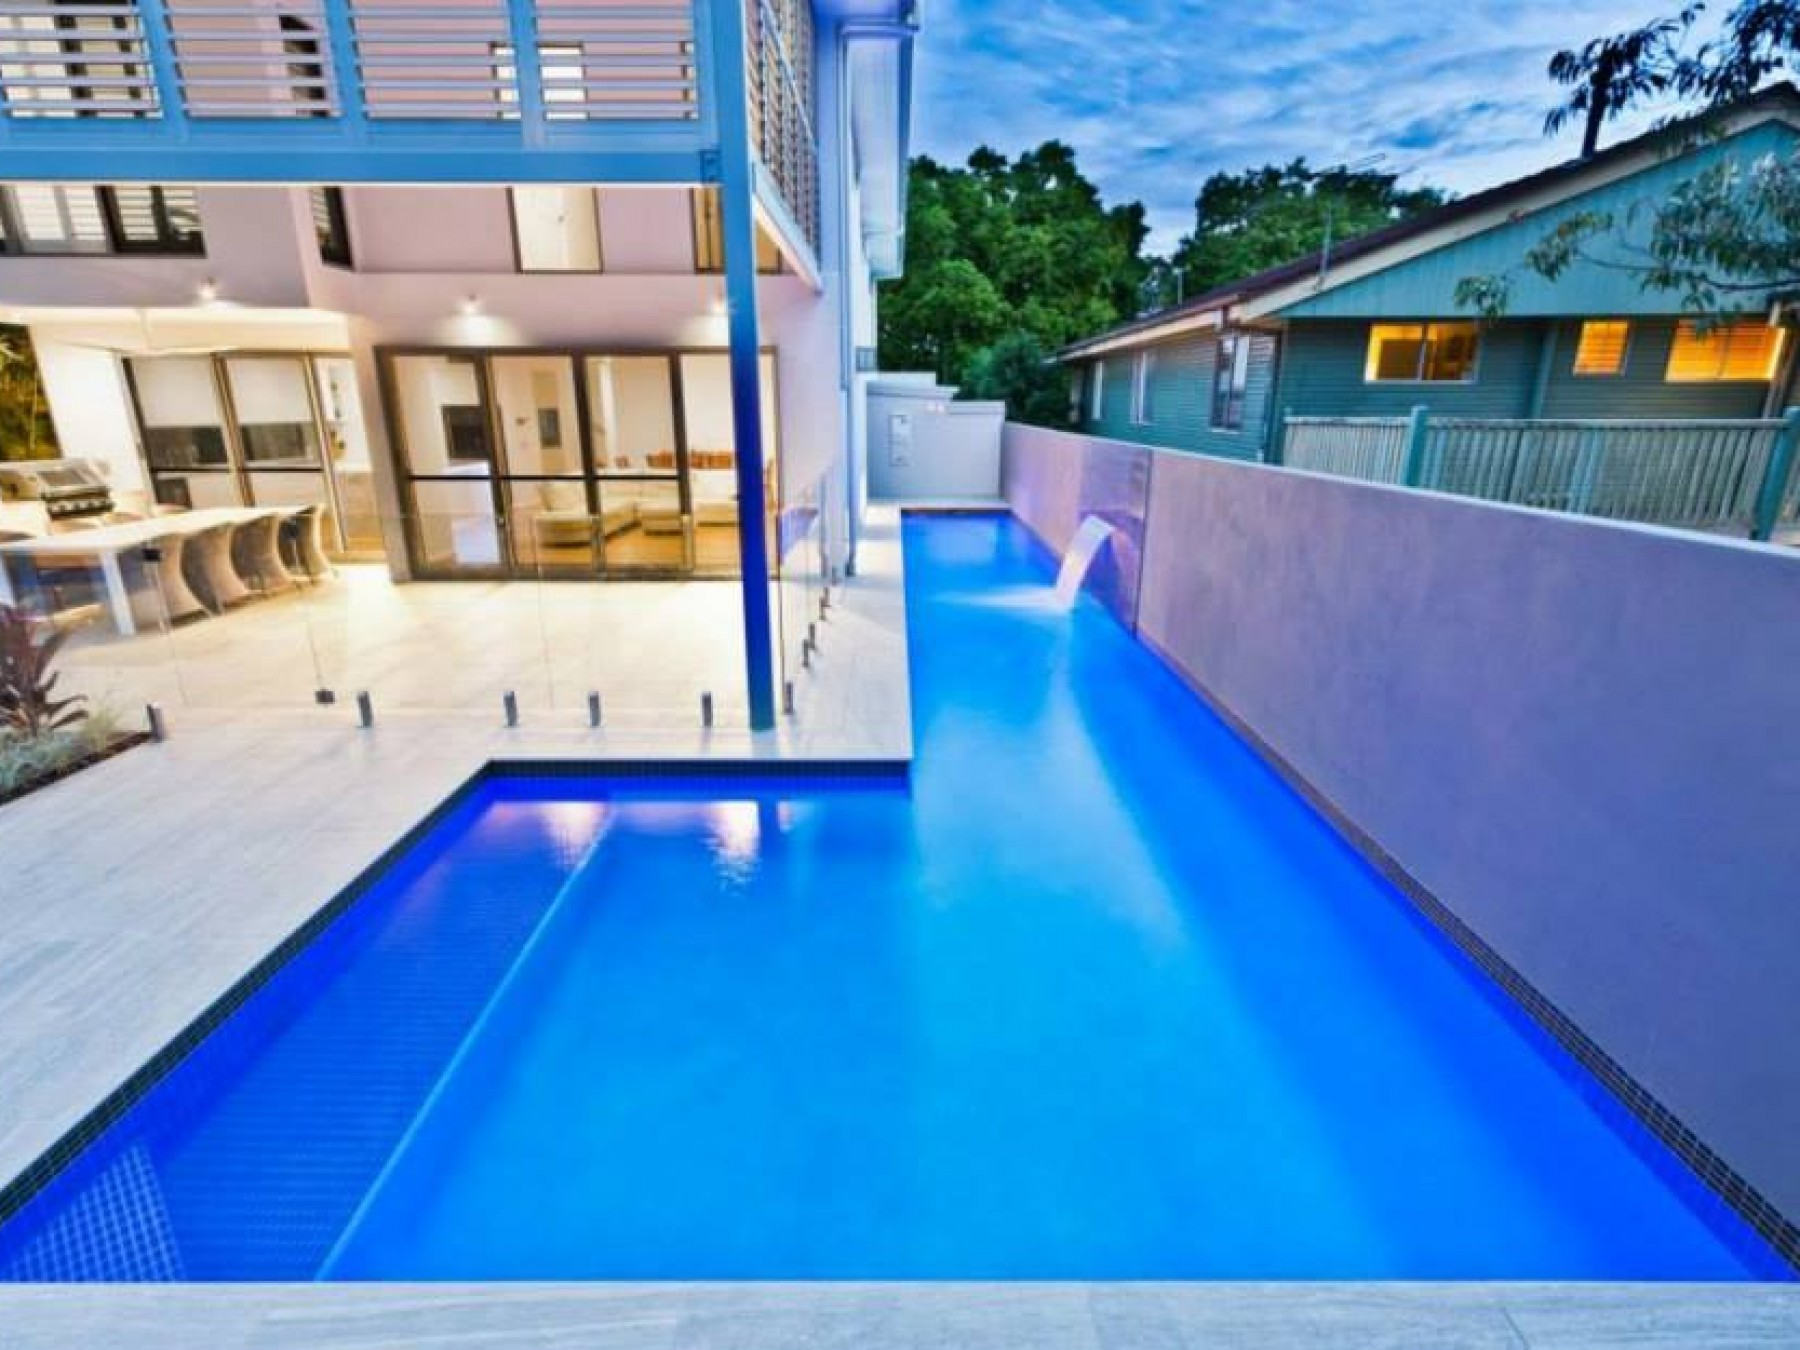 Selling or Leasing a pool in Ashgrove West